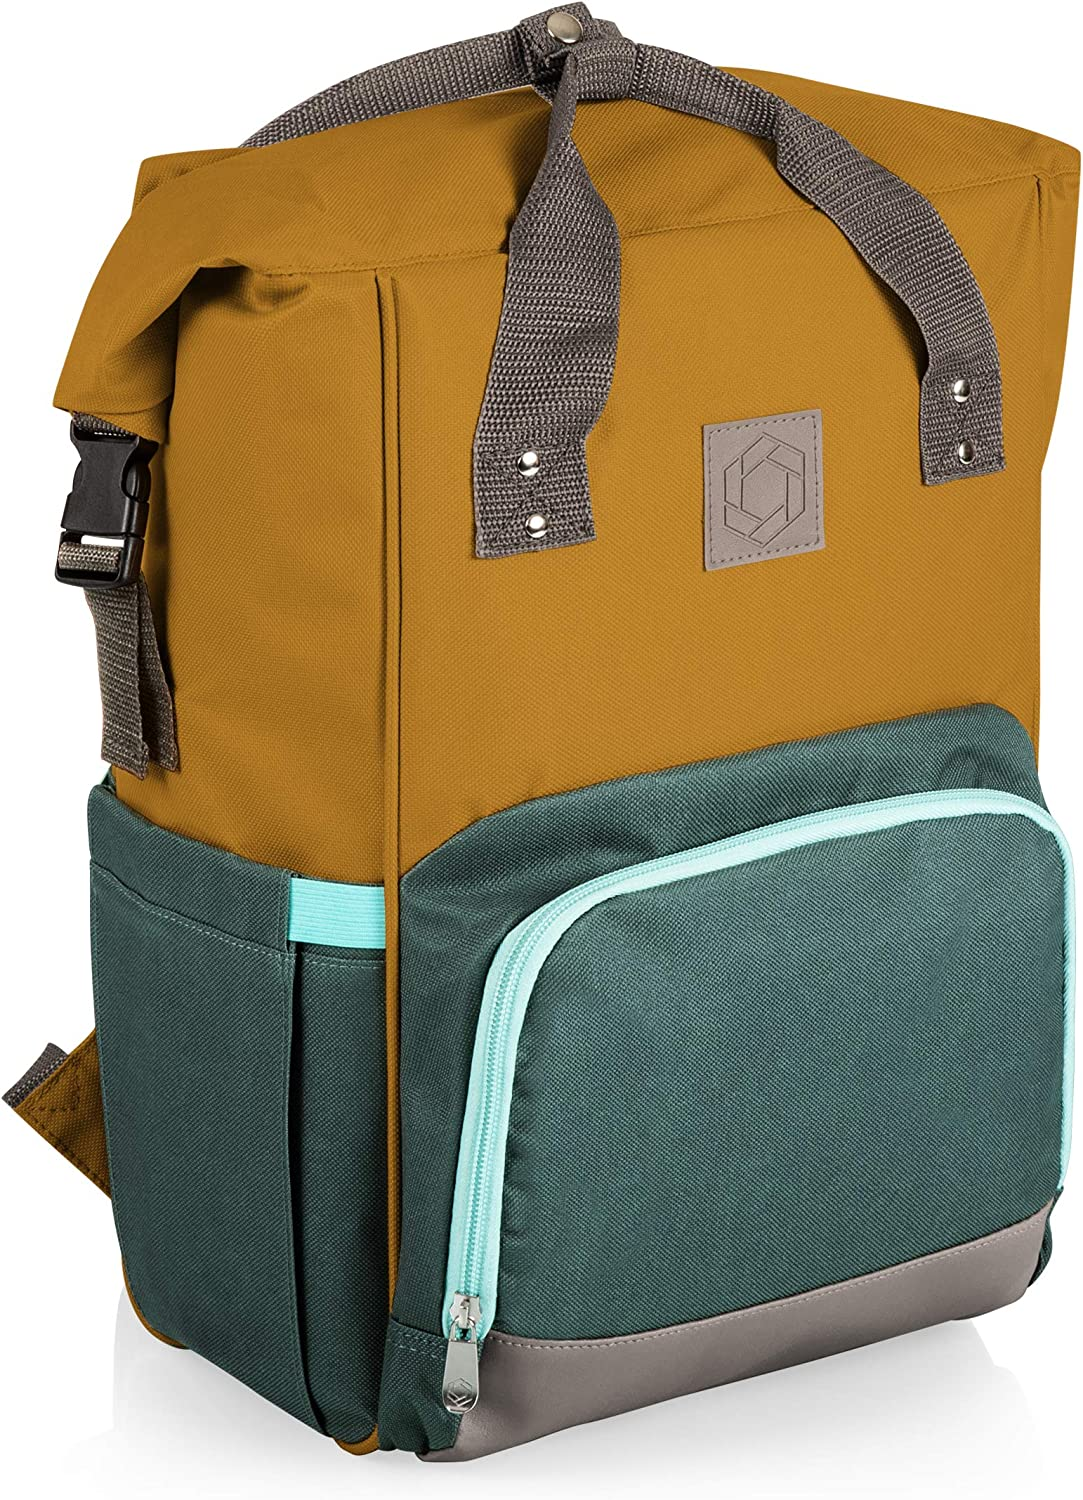 ONIVA – a Picnic Time Brand OTG Roll-Top Cooler Backpack